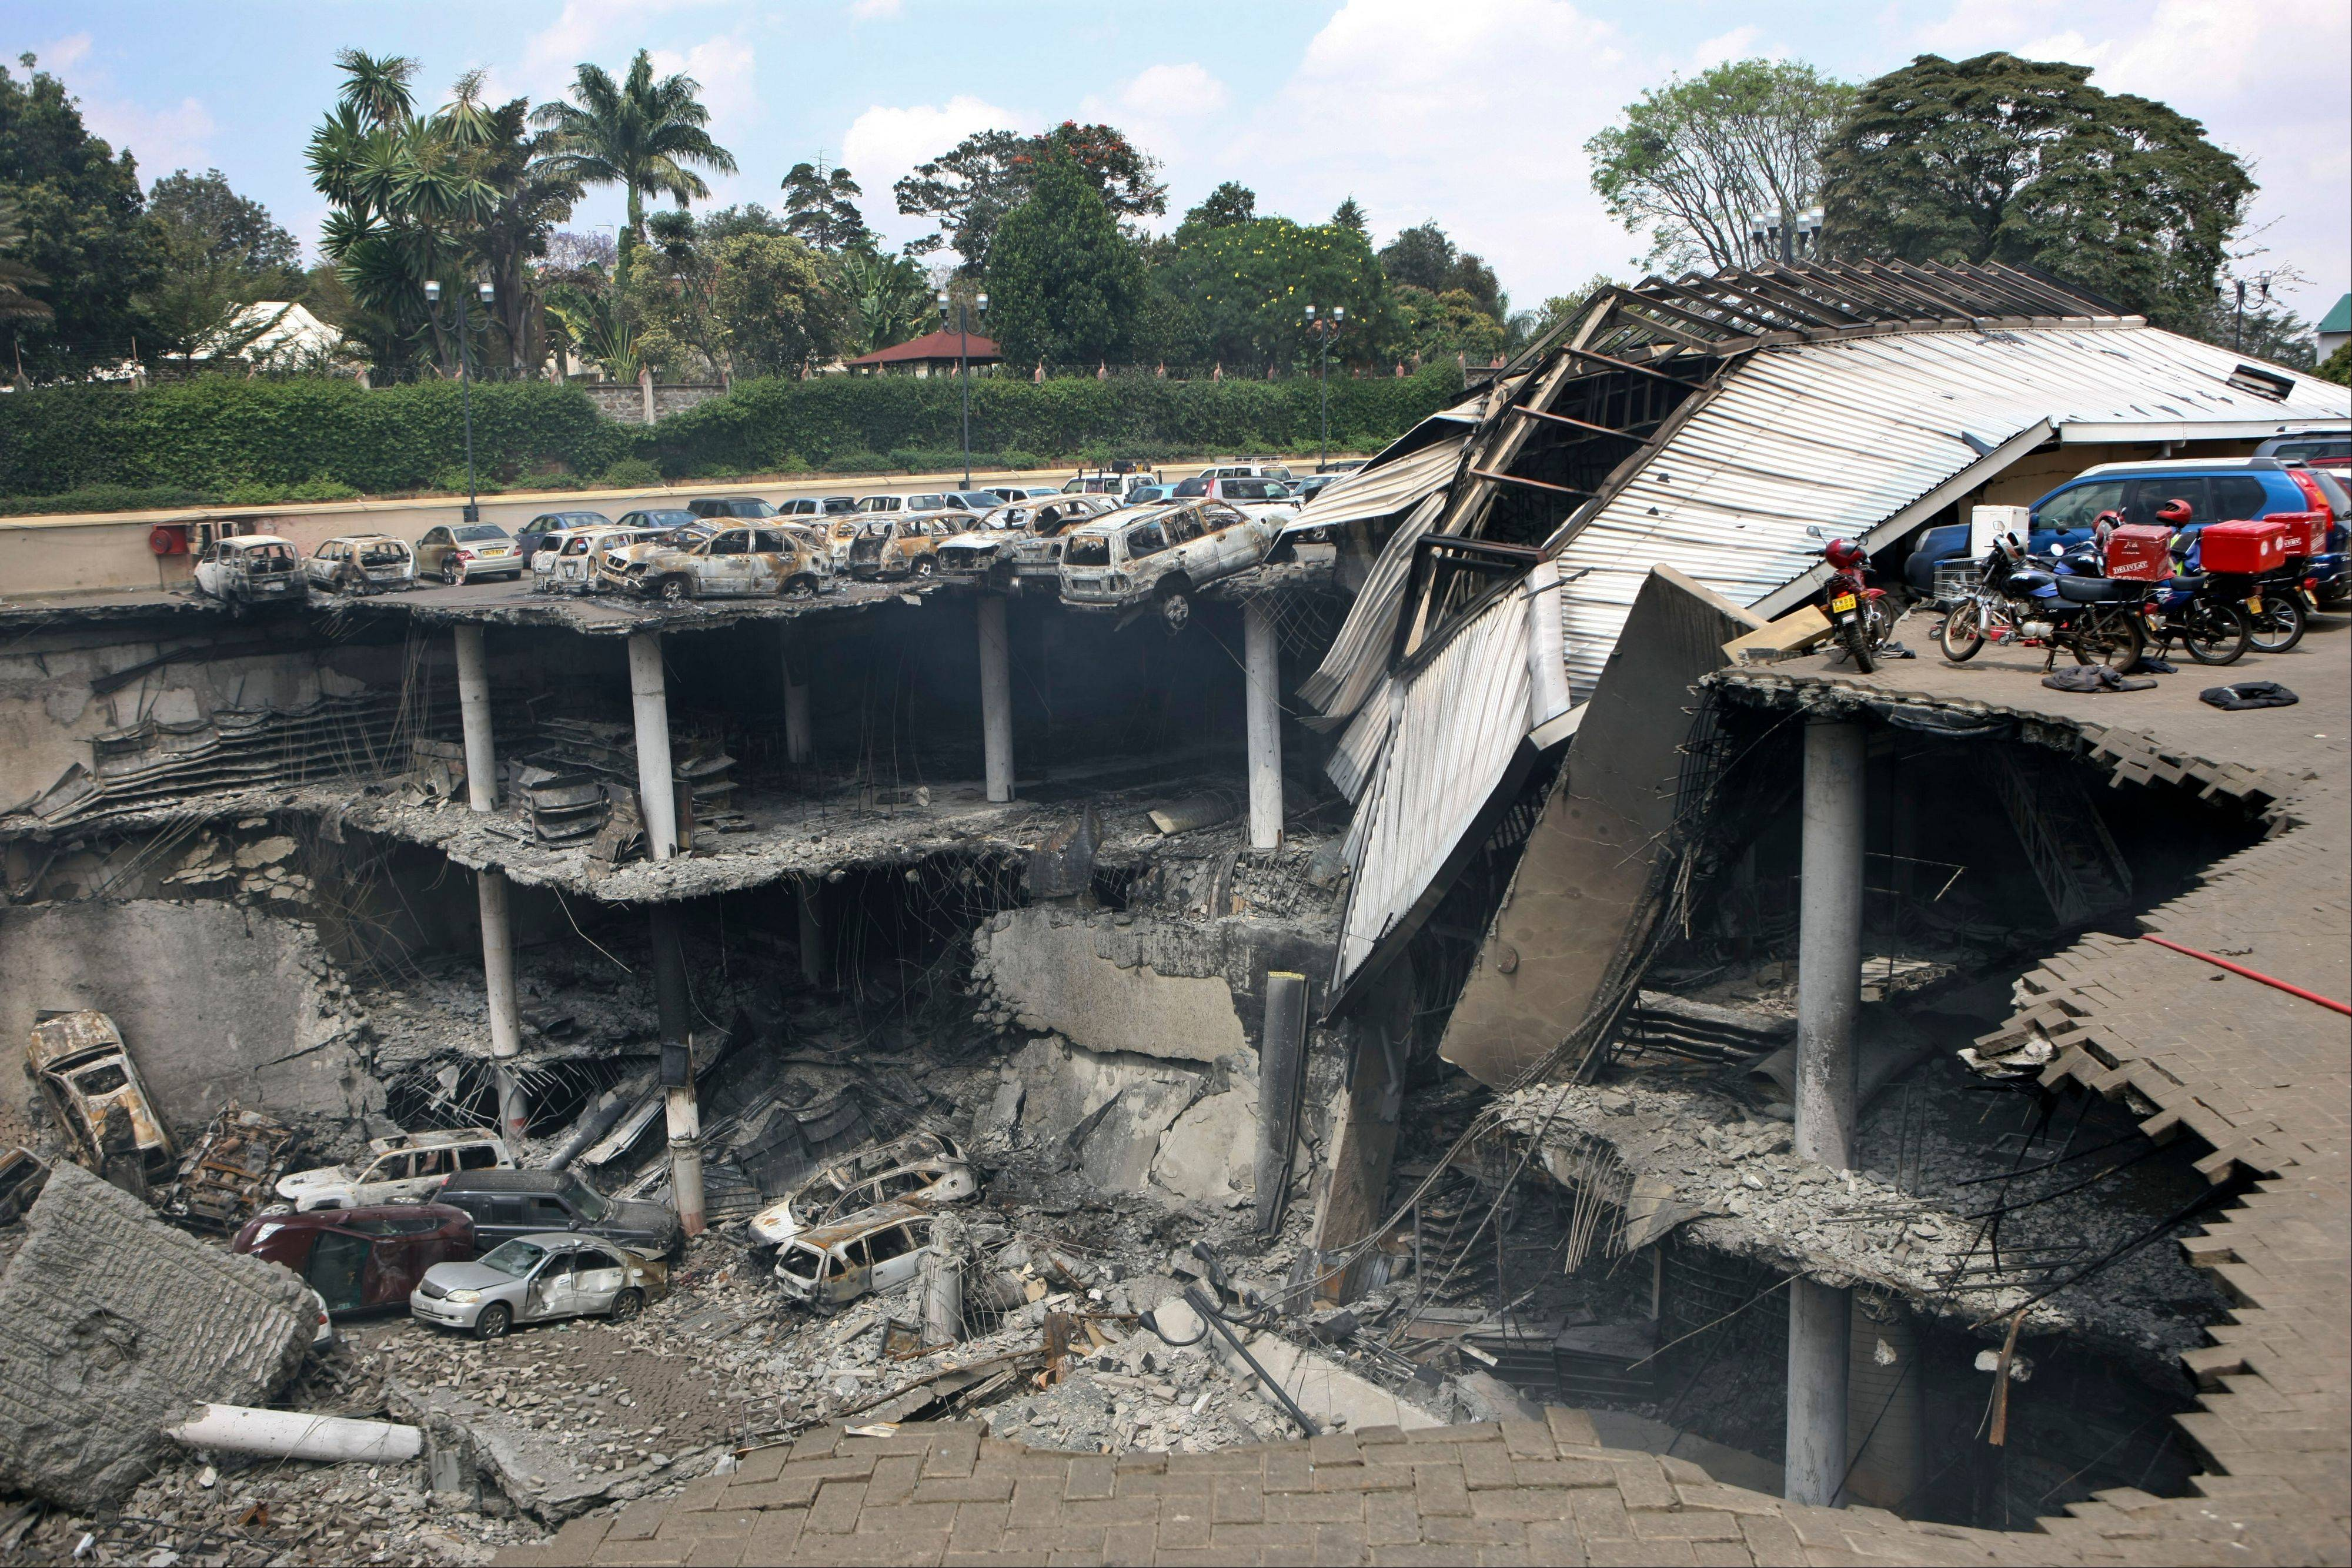 The collapsed upper parking deck atop the Westgate Mall in Nairobi, Kenya, Thursday, Sept. 26, 2013. Kenya's military caused the massive collapse of three floors of Nairobi�s Westgate Mall during the terrorist siege in which at least 67 people died, a top-ranking government official told The Associated Press.